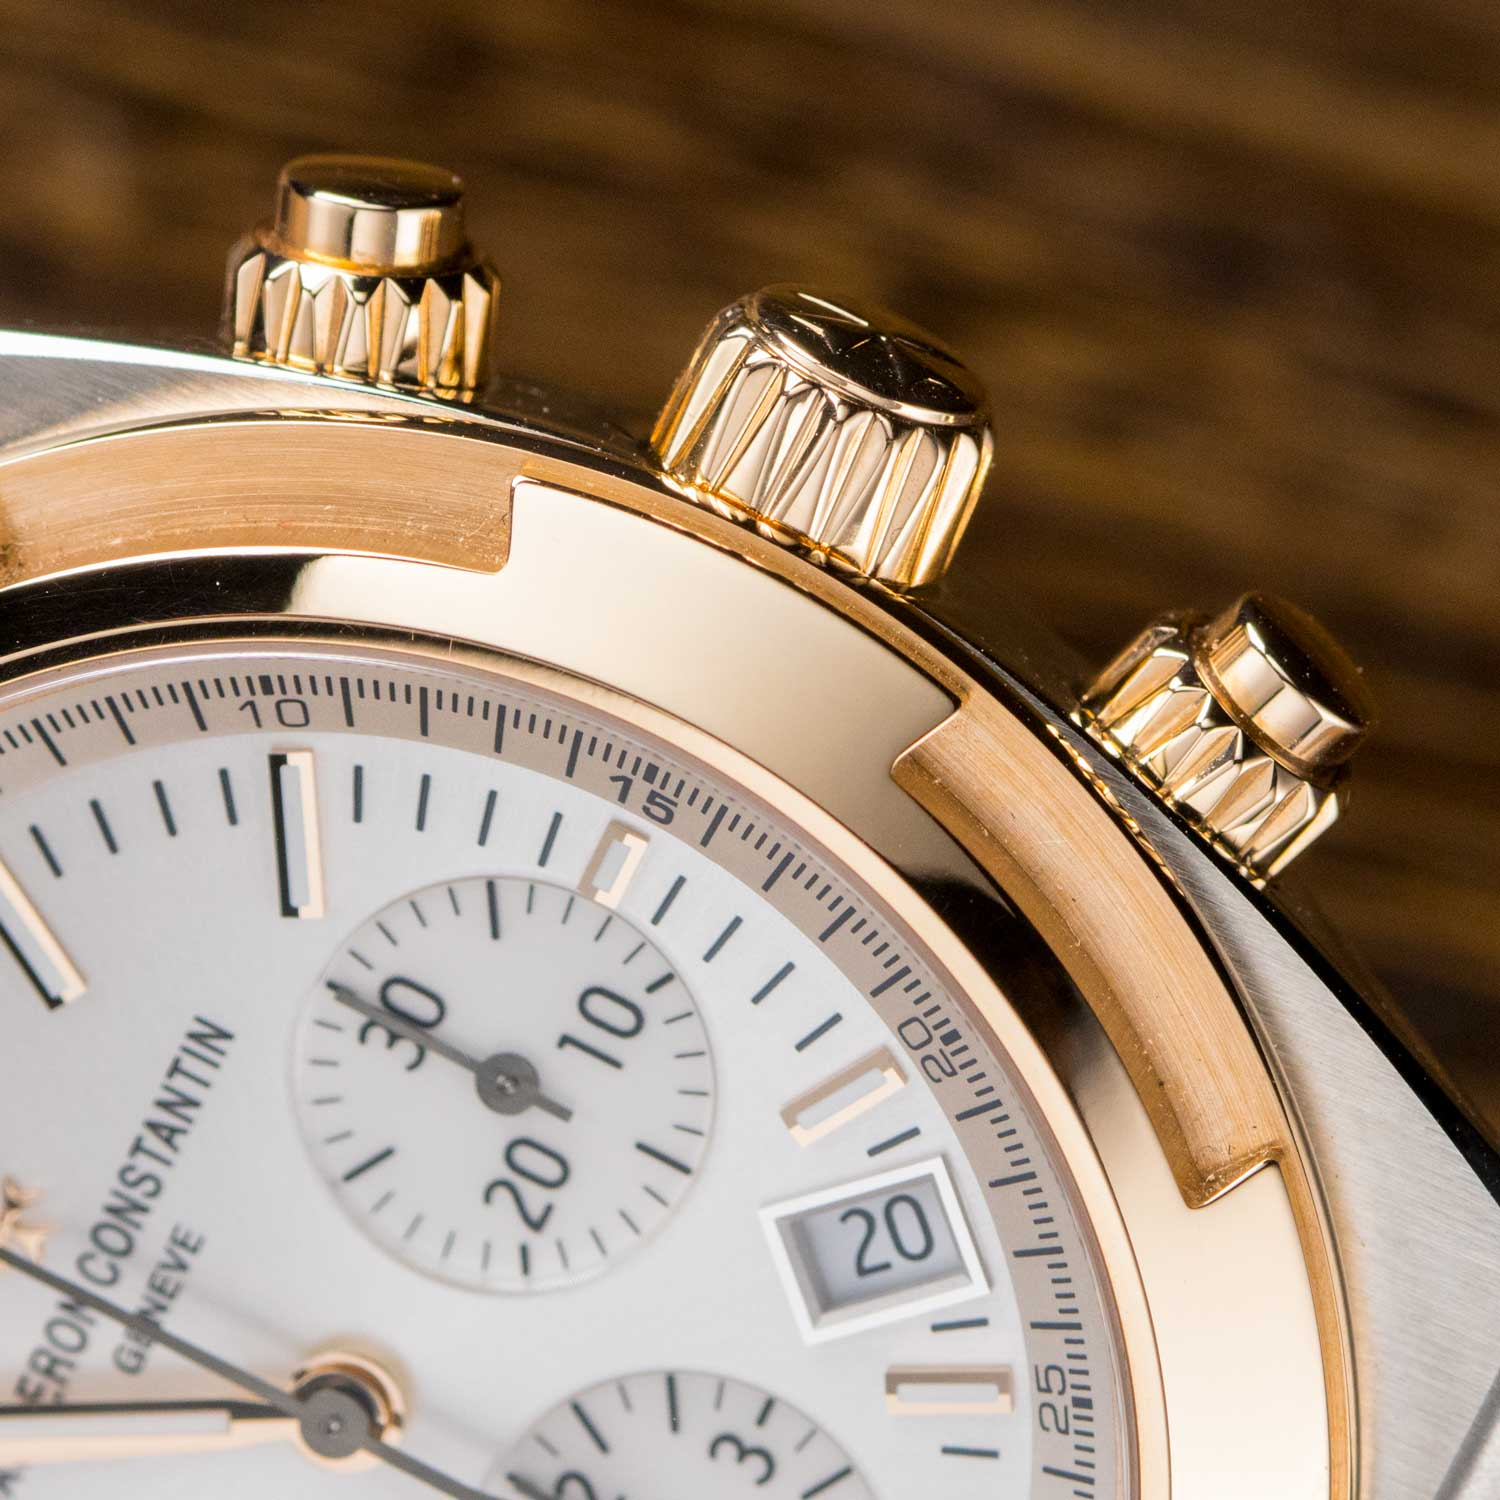 Pink gold pushers and crown on the Vacheron Constantin Overseas two-tone Chronograph